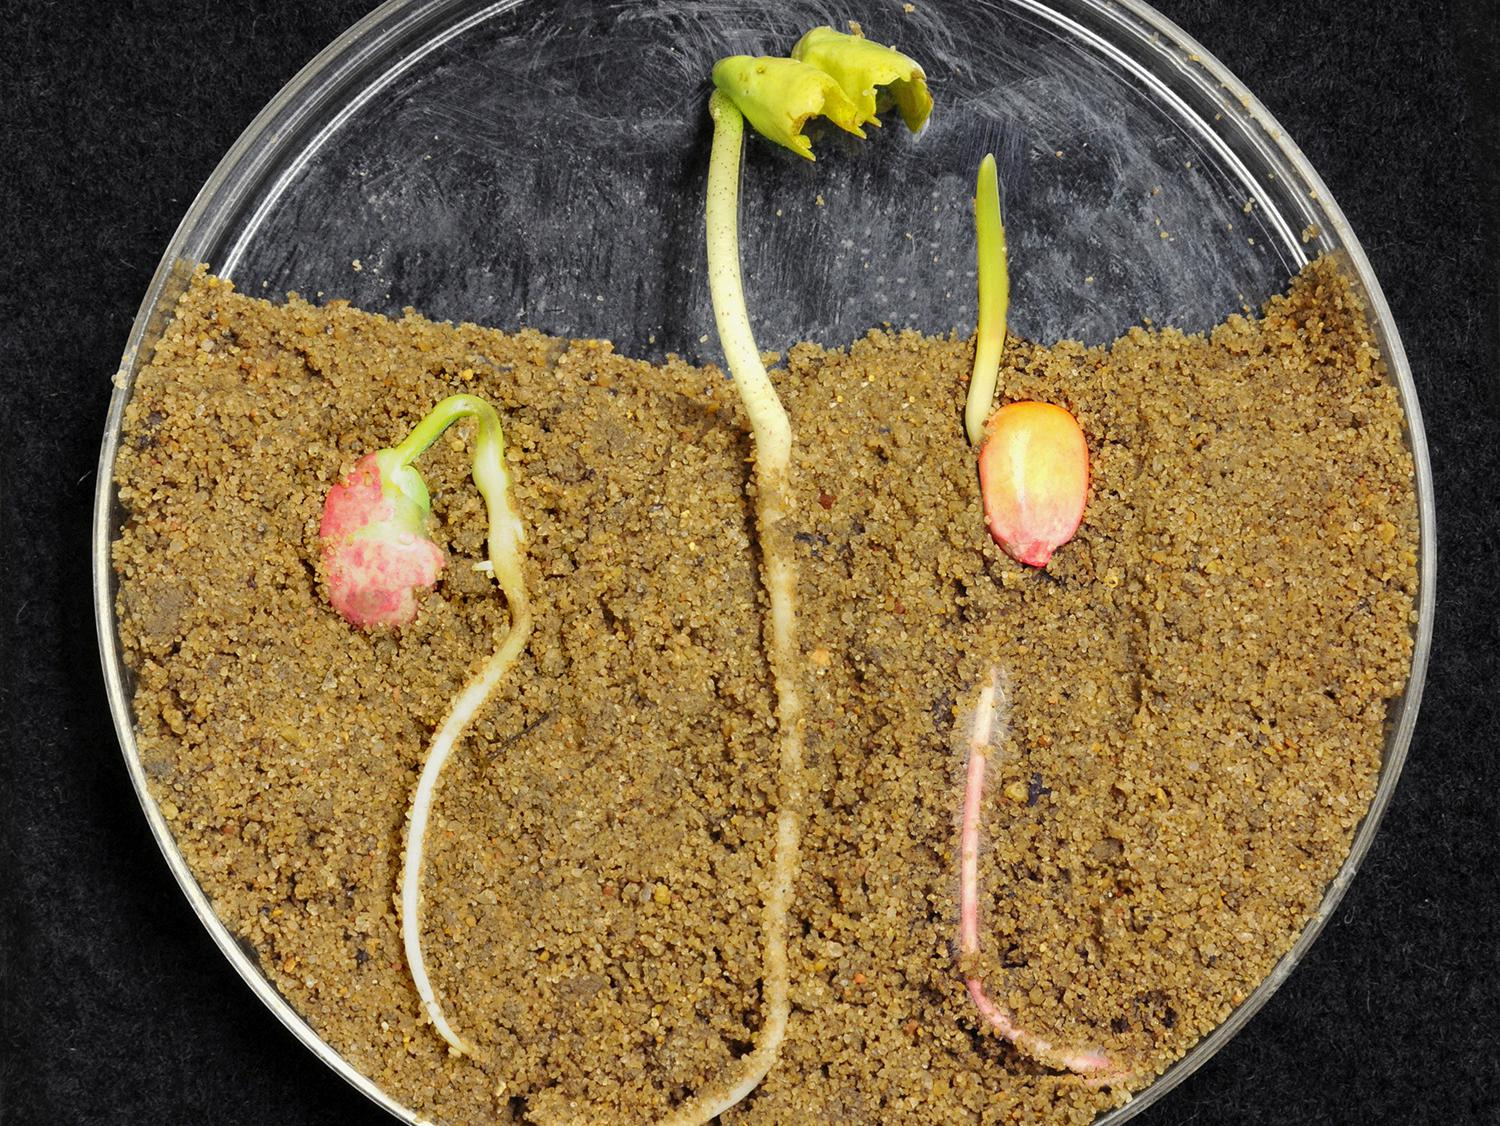 Mississippi farmers plan to plant more corn, less cotton and about the same soybean acreage as last year. From left, soybean, cotton and corn seeds have germinated in the lab. (Photo by MSU Ag Communications/Kat Lawrence)